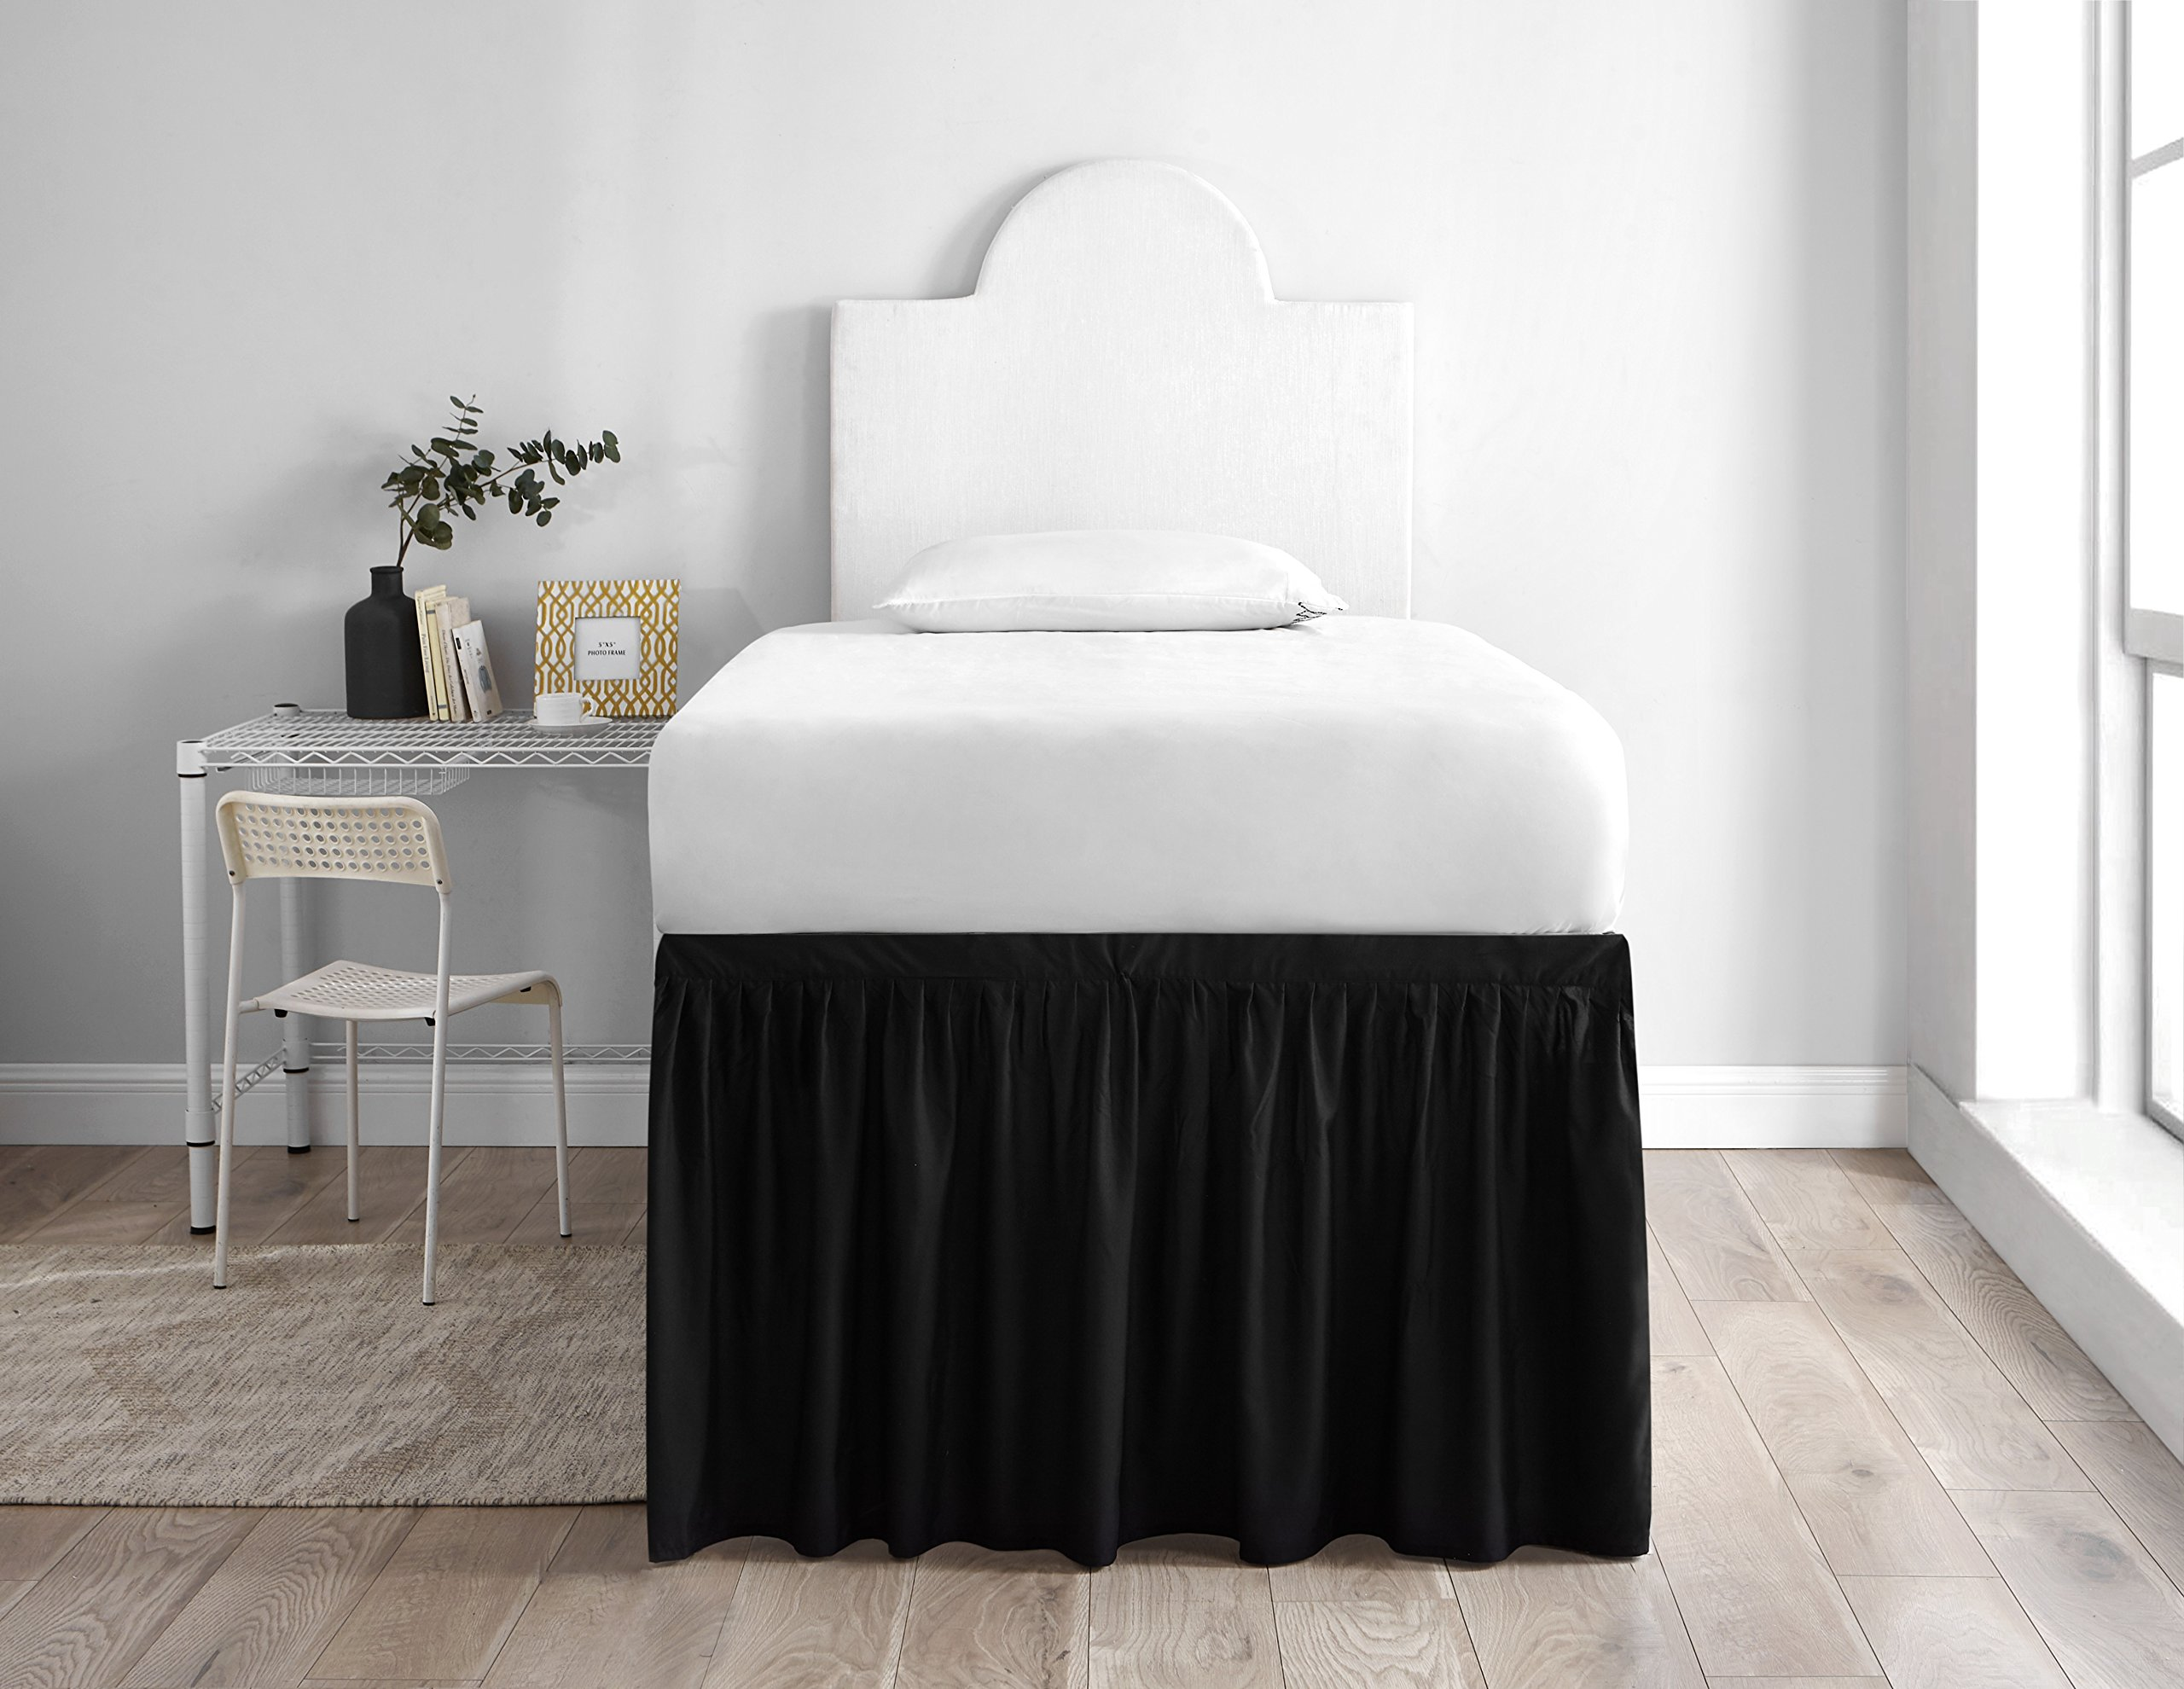 Dorm Sized Bed Skirt Panel with Ties (1 Panel) - Black by DormCo (Image #1)